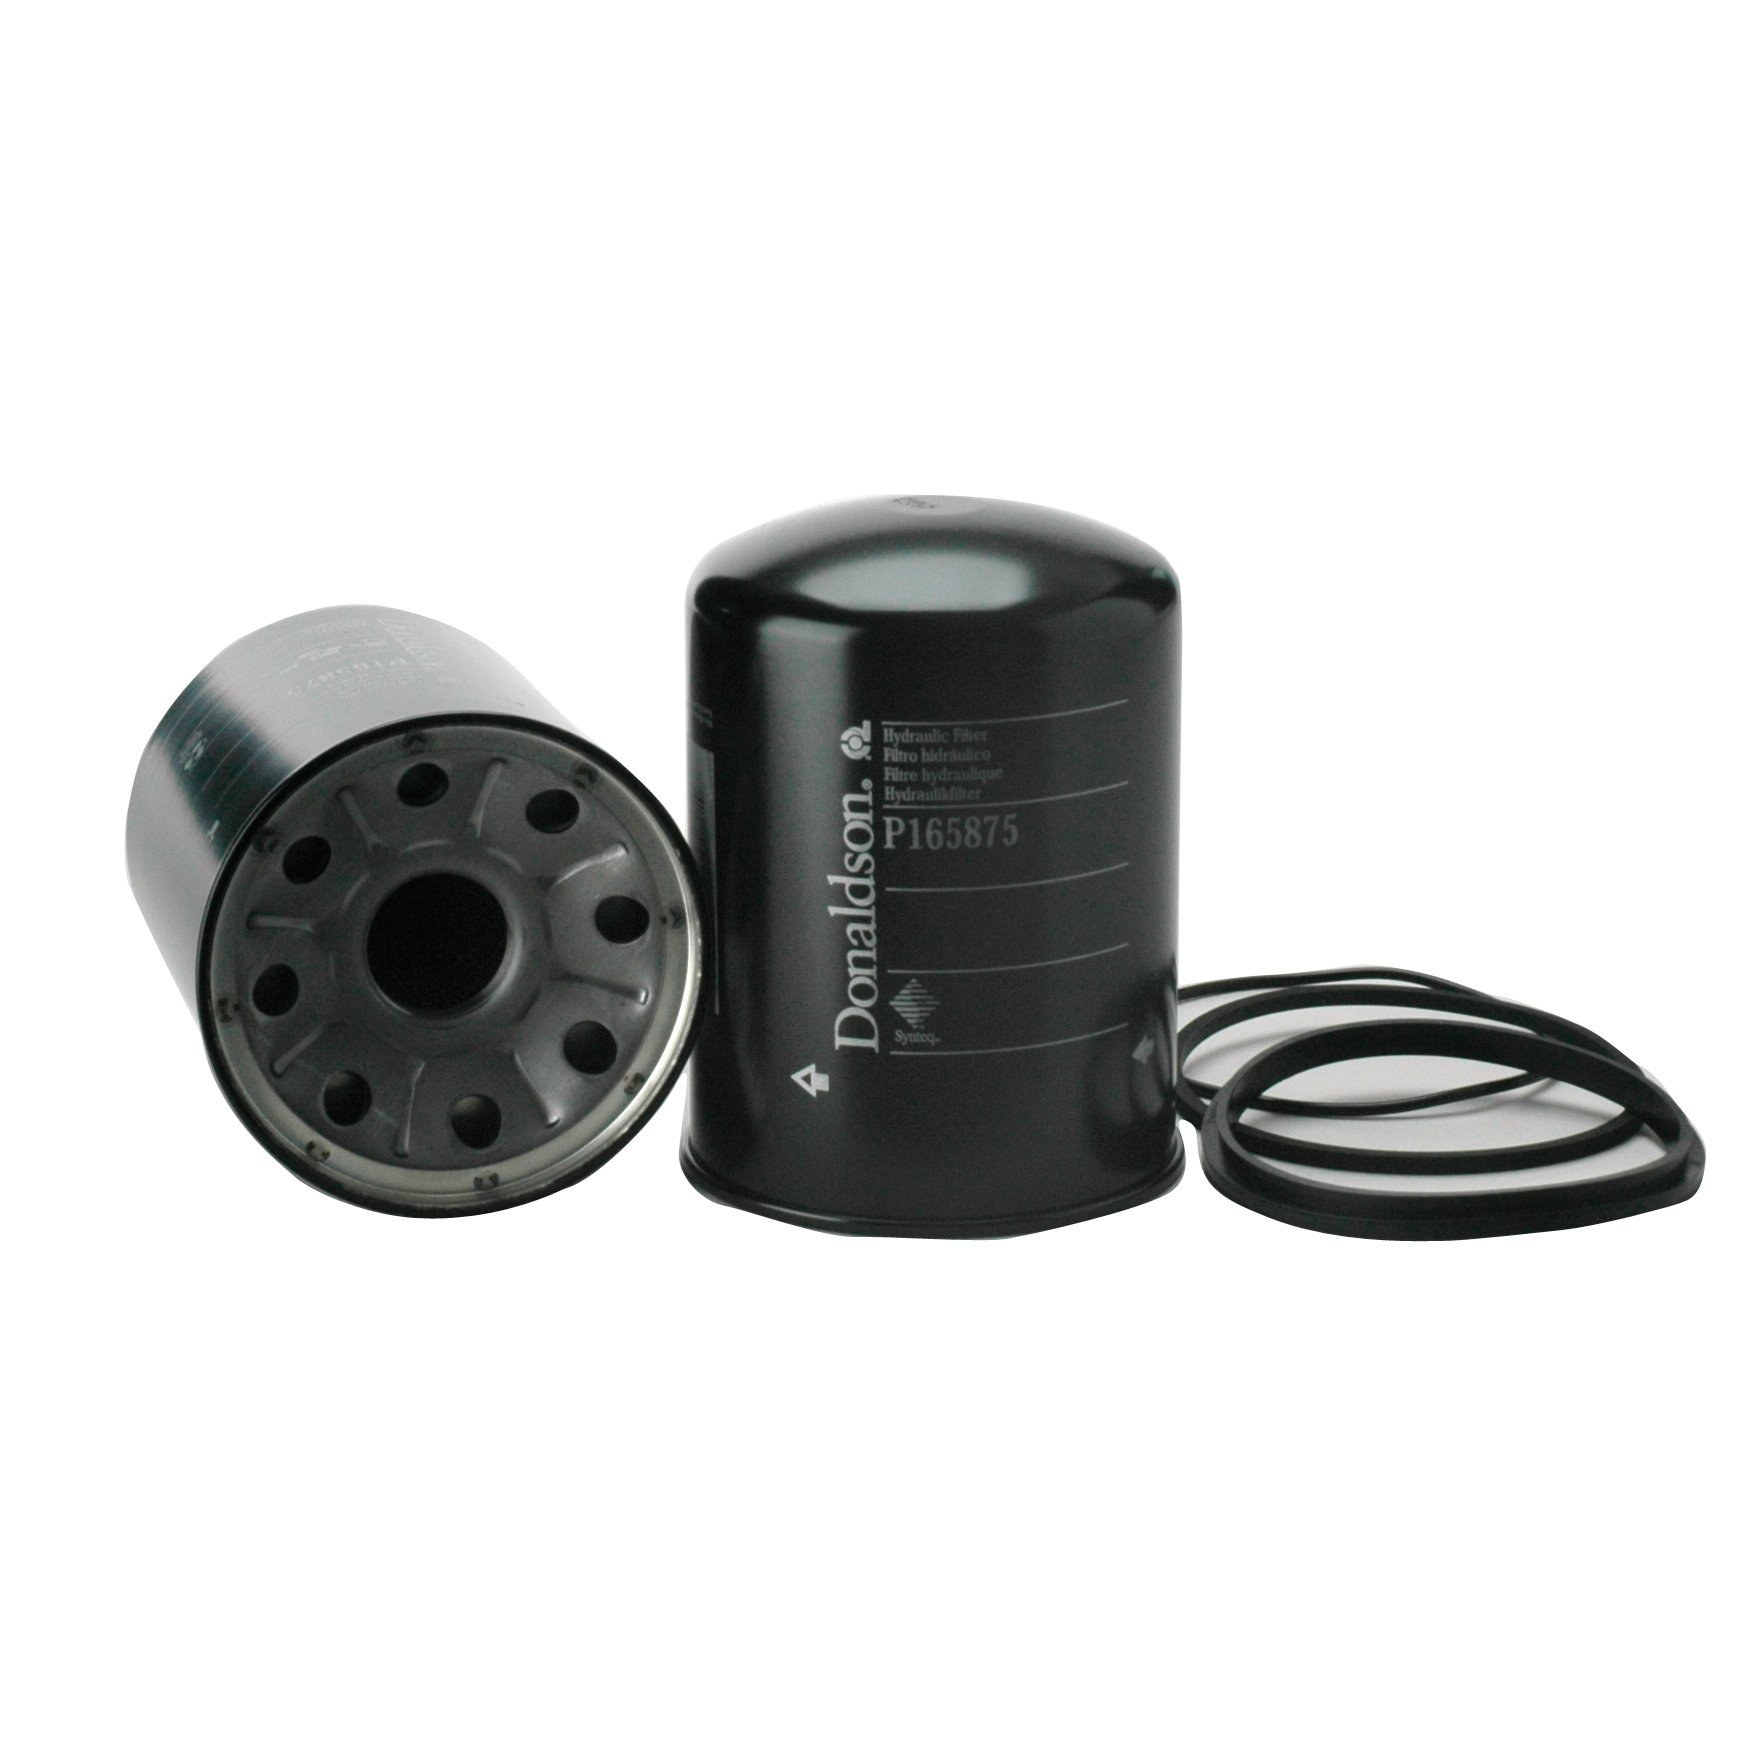 Donaldson P165875 Hydraulic Filter, Spin-on by Donaldson